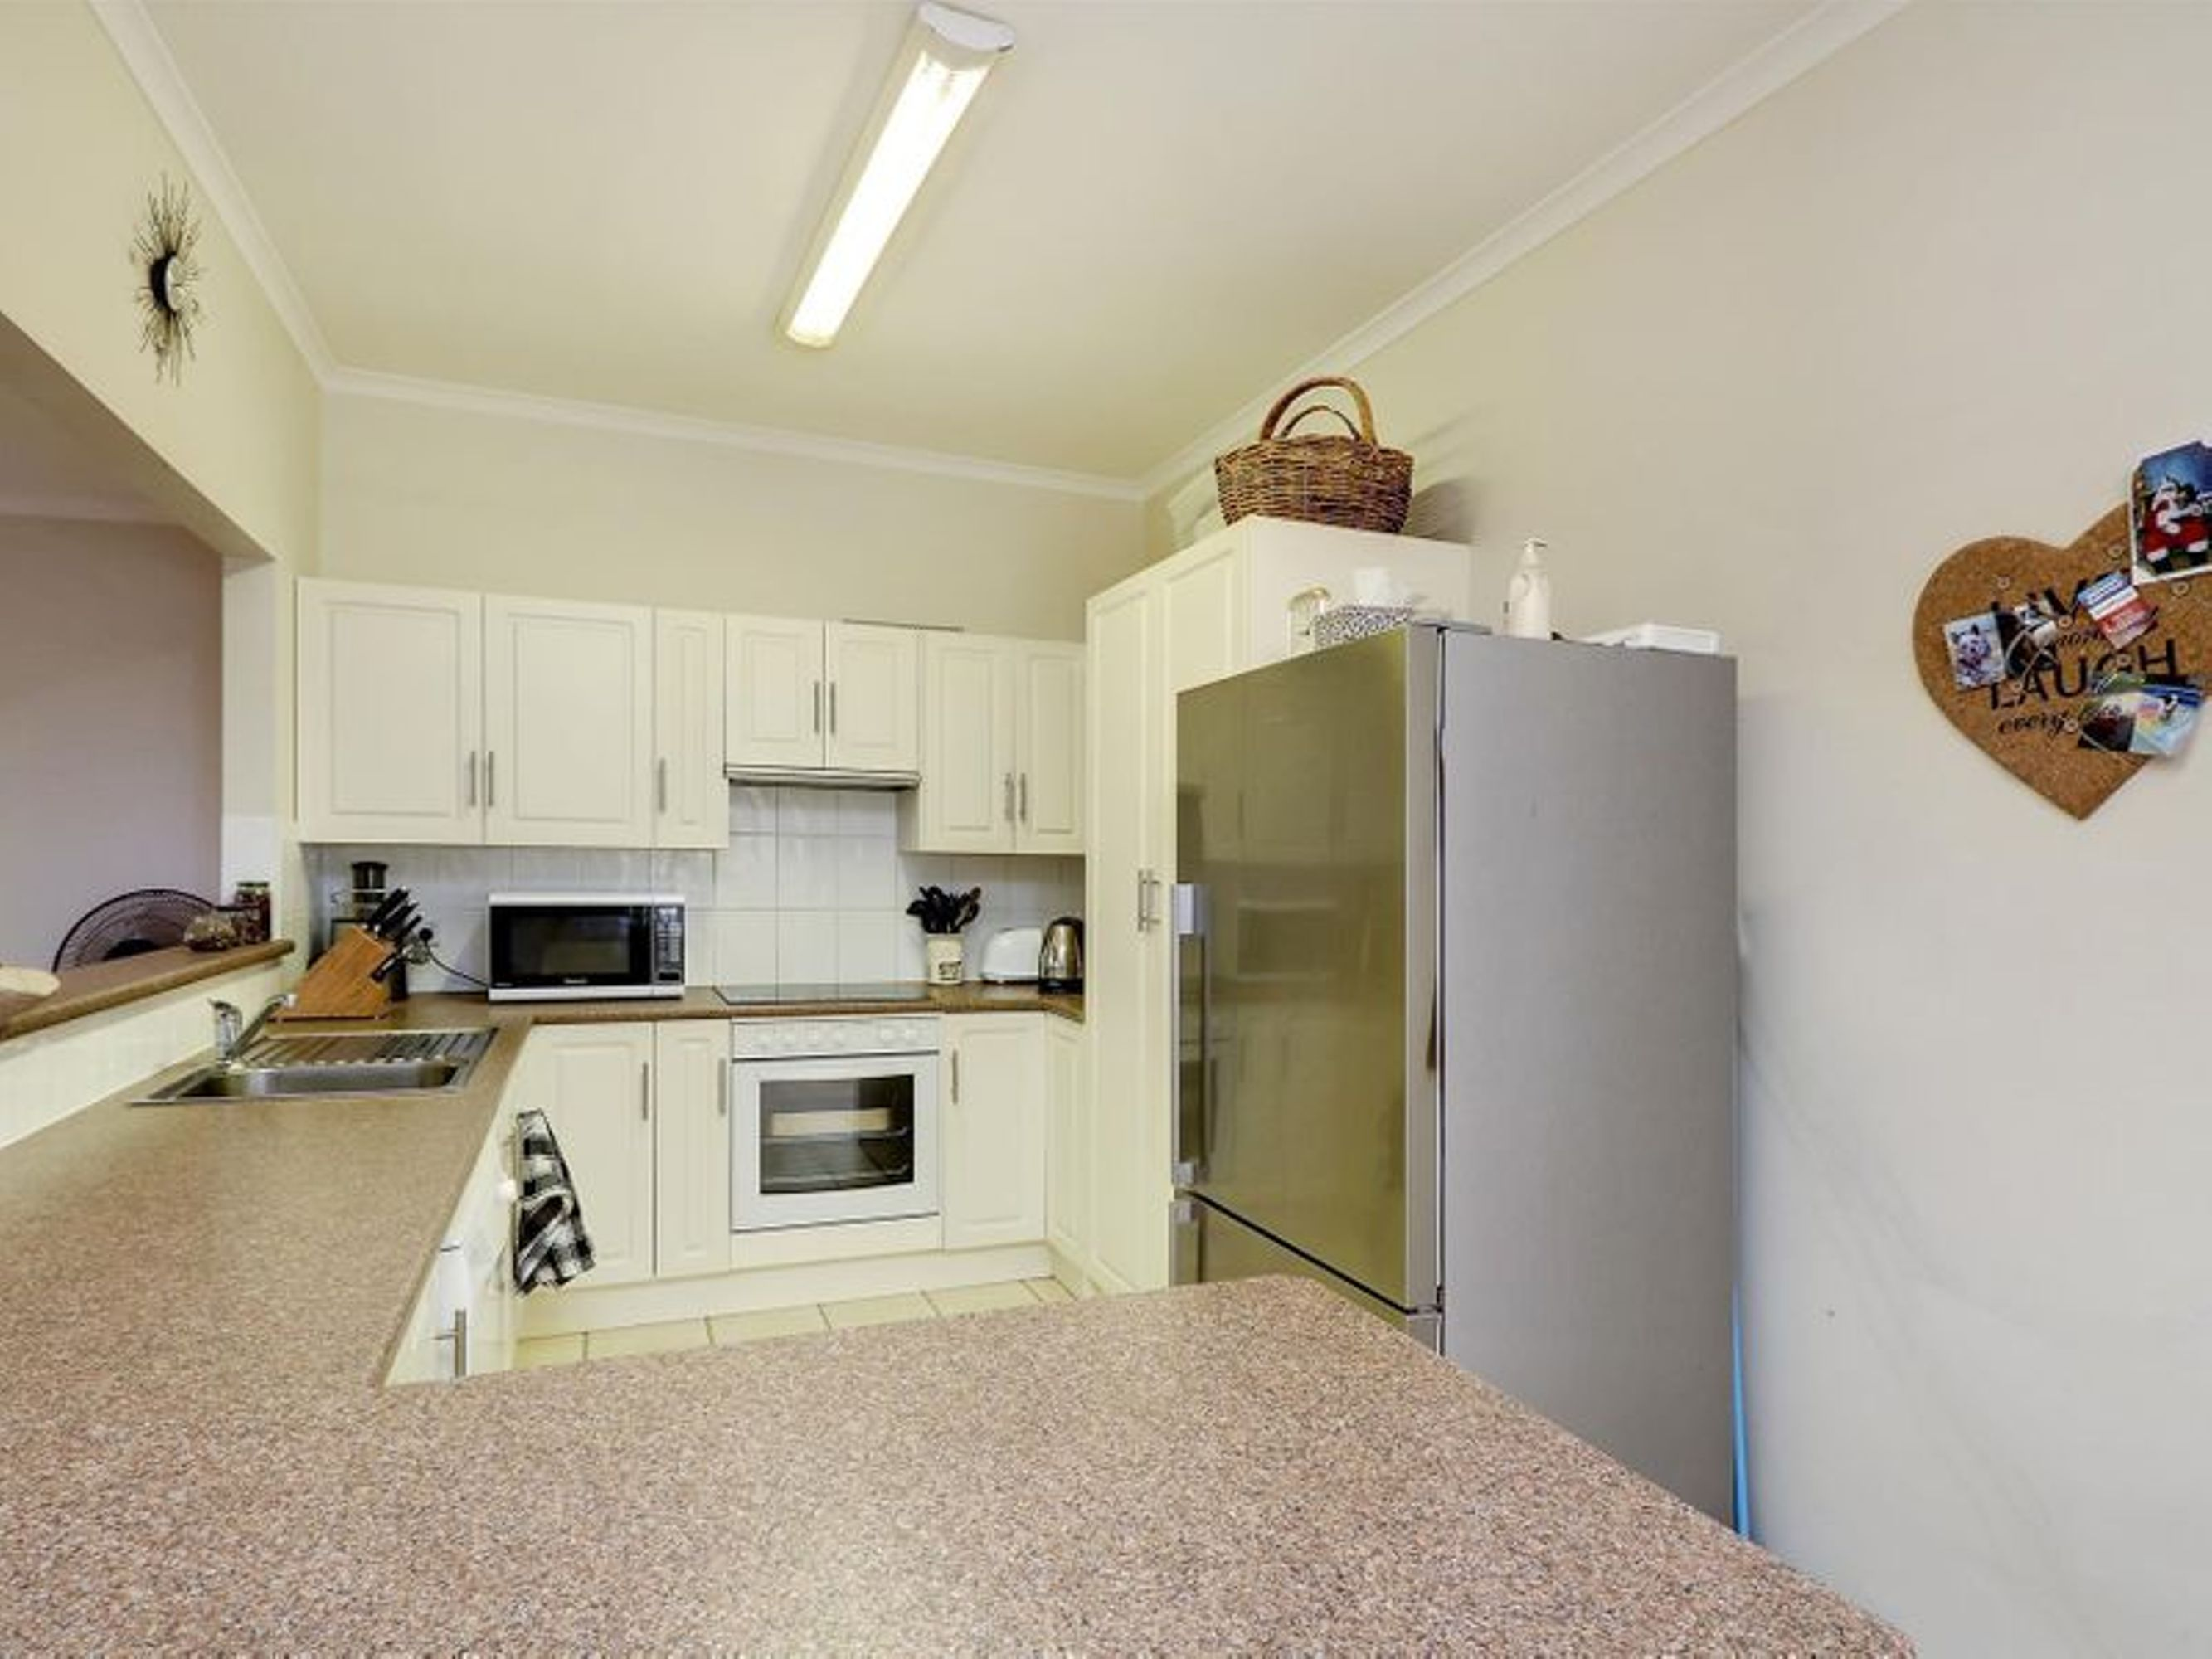 162 Cummins Street, Broken Hill, NSW 2880